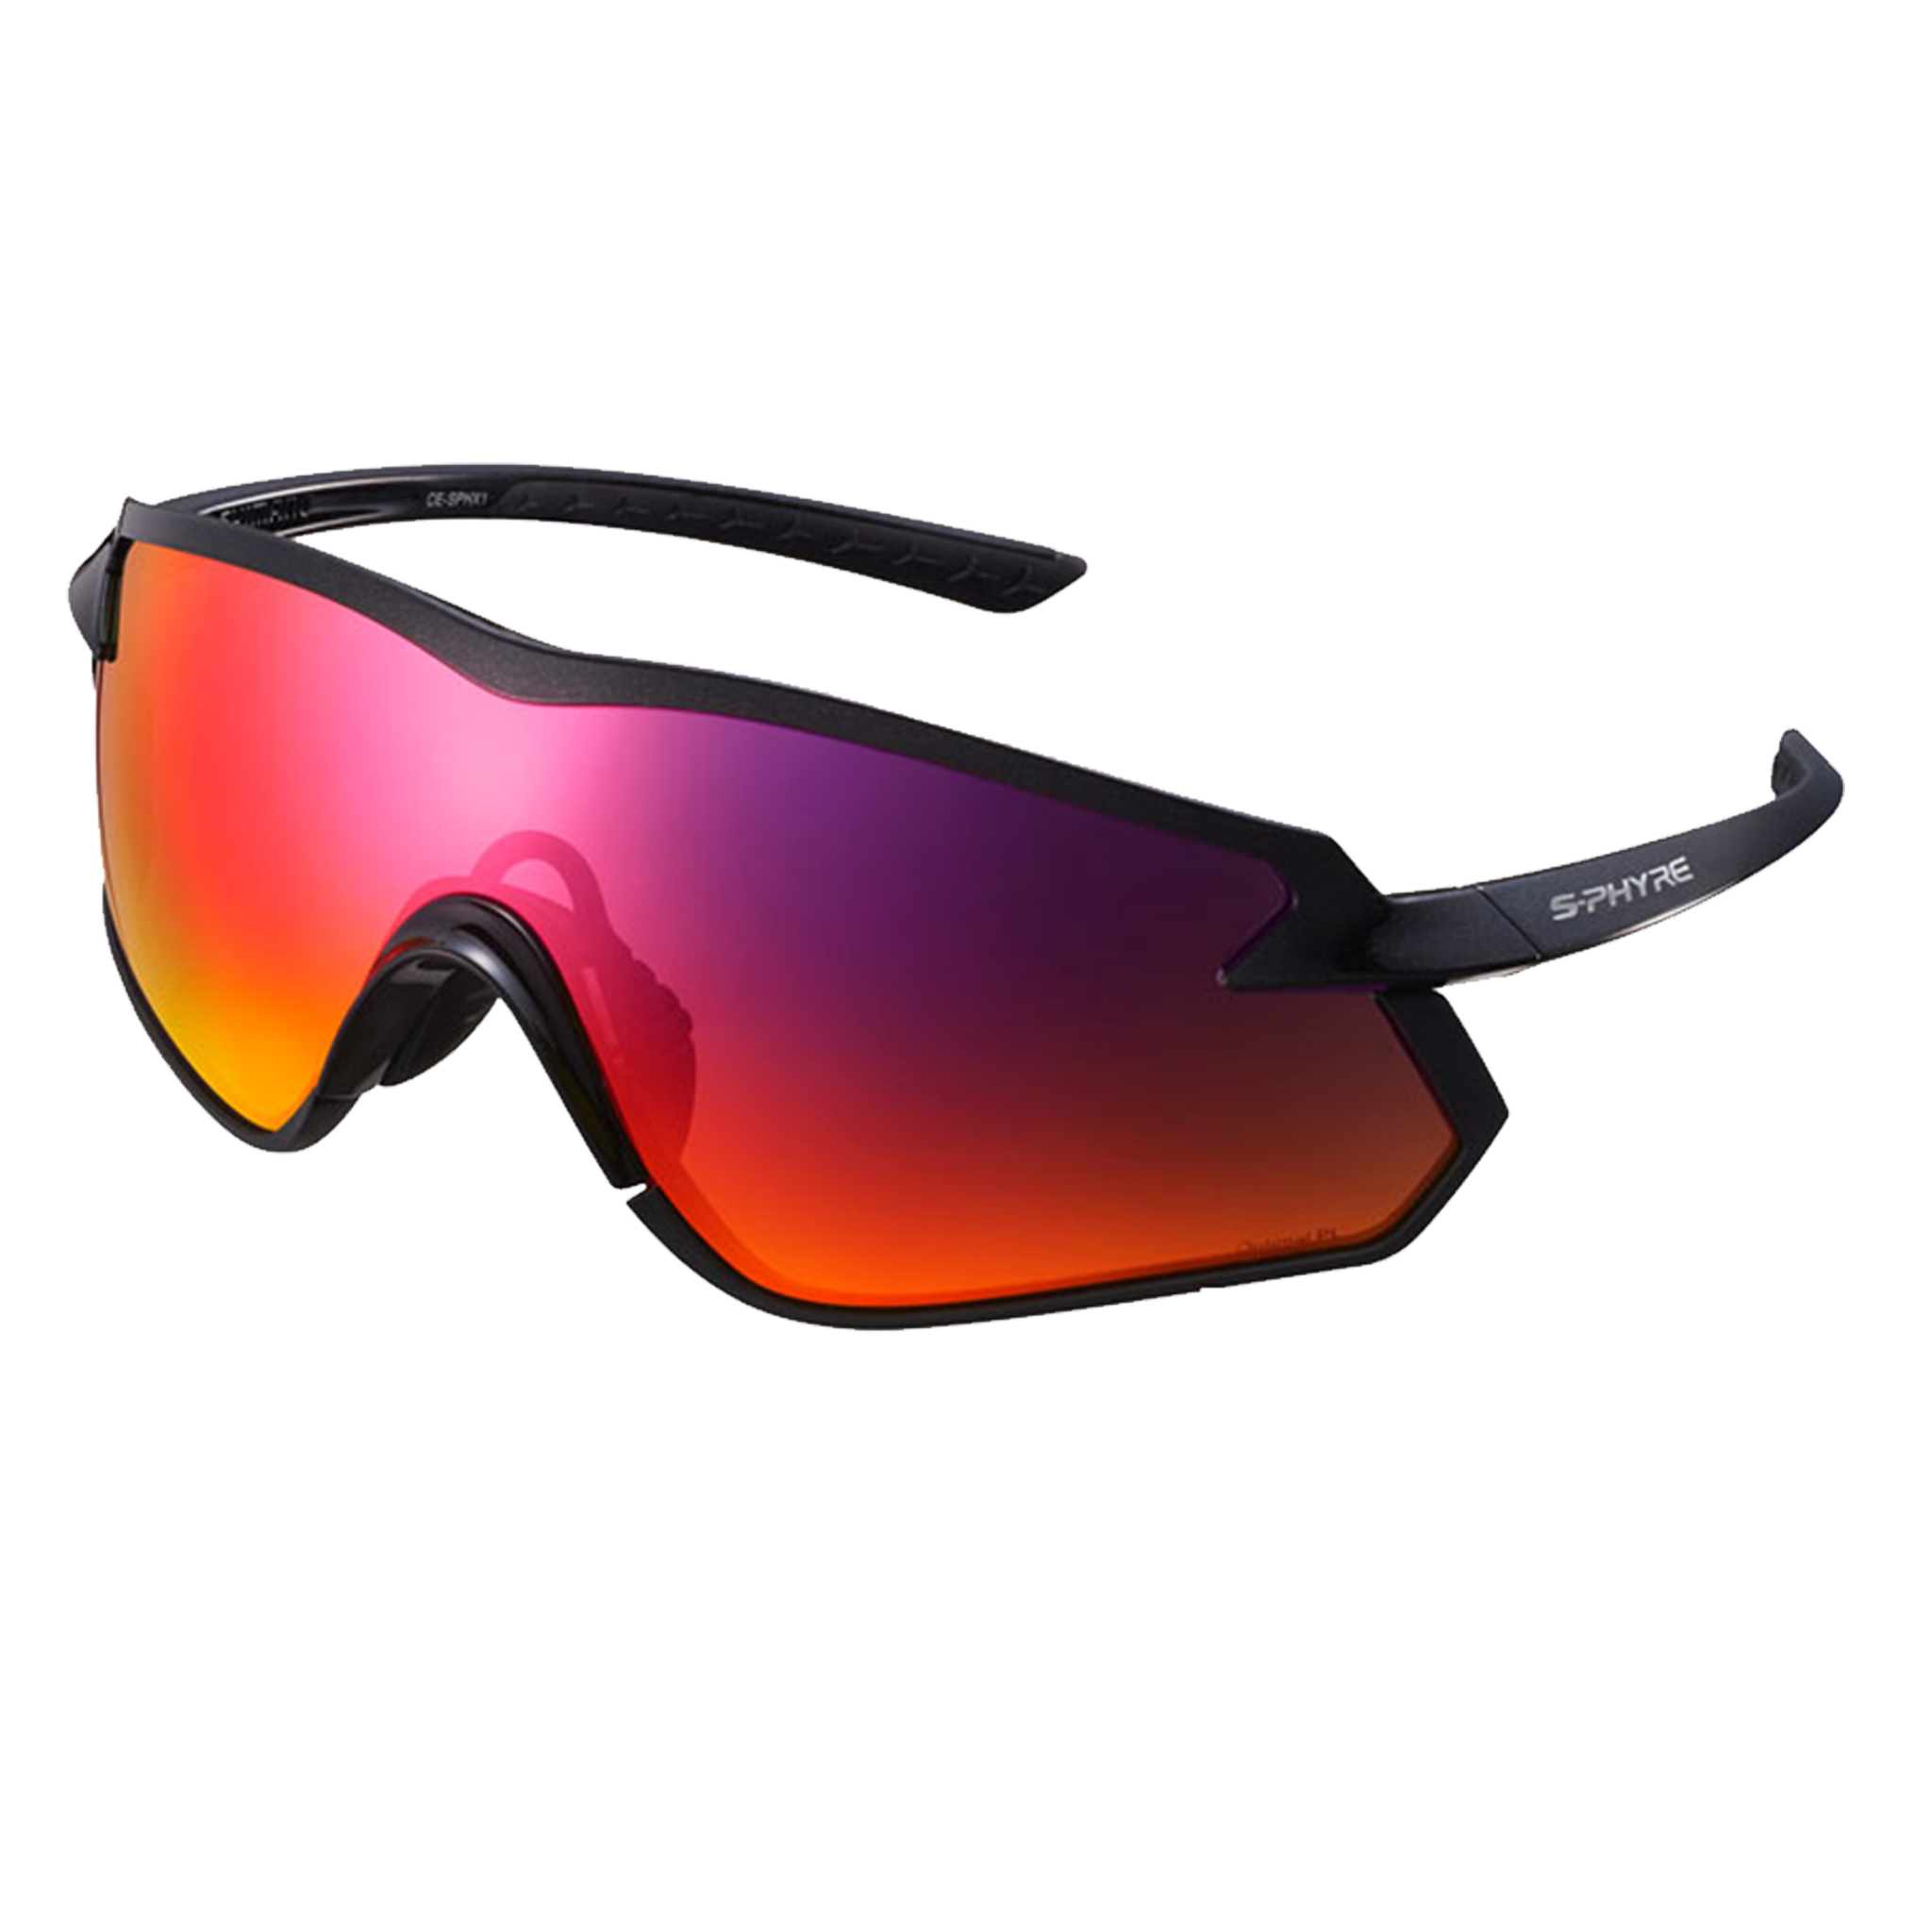 274e998bfd S-Phyre Eyewear – Mellow Johnny s Bike Shop - Online Store